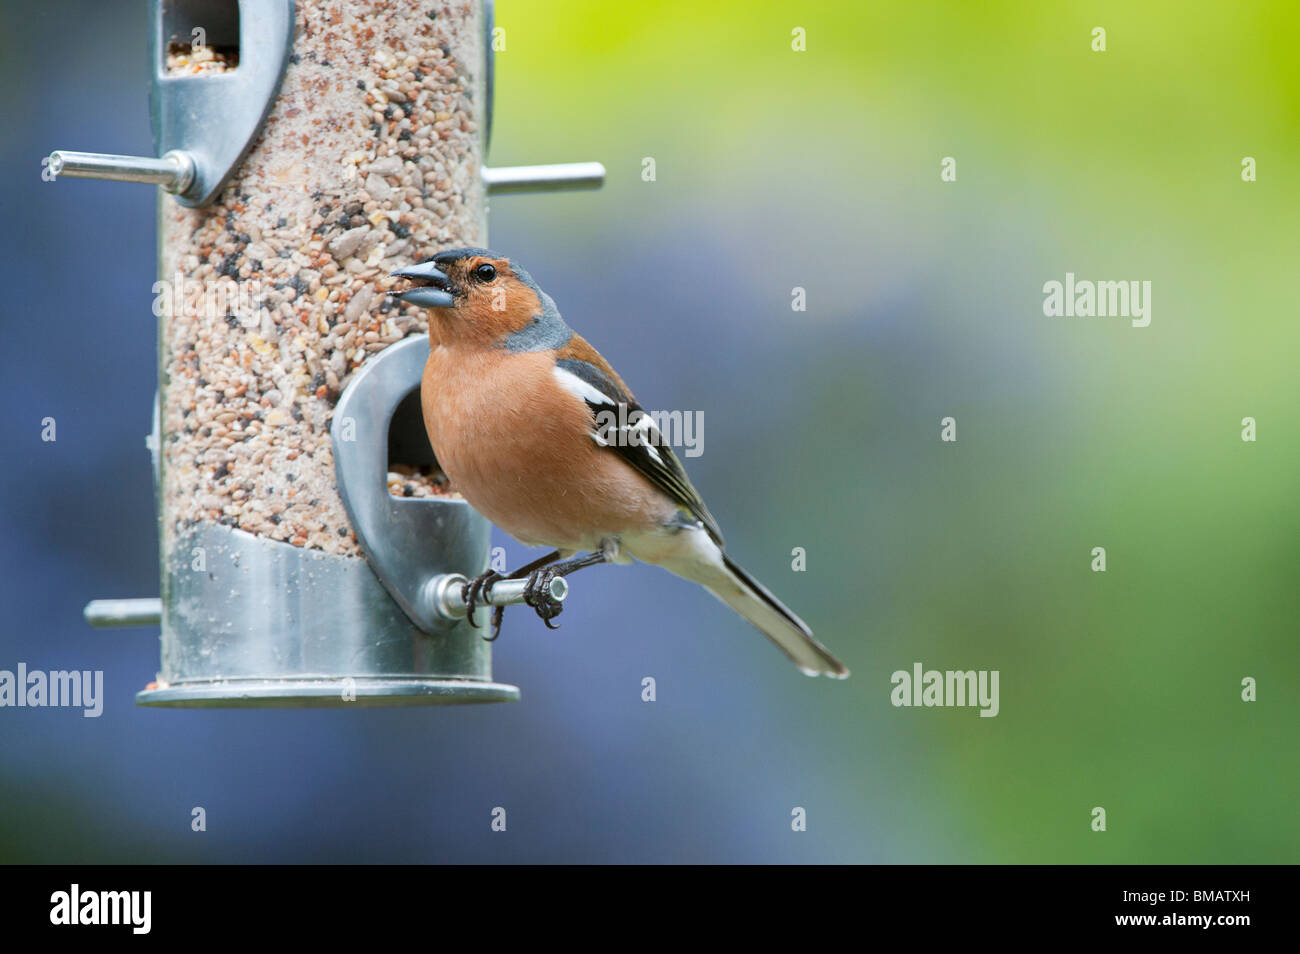 Fringilla Coelebs. Male chaffinch feeding on a bird seed feeder - Stock Image